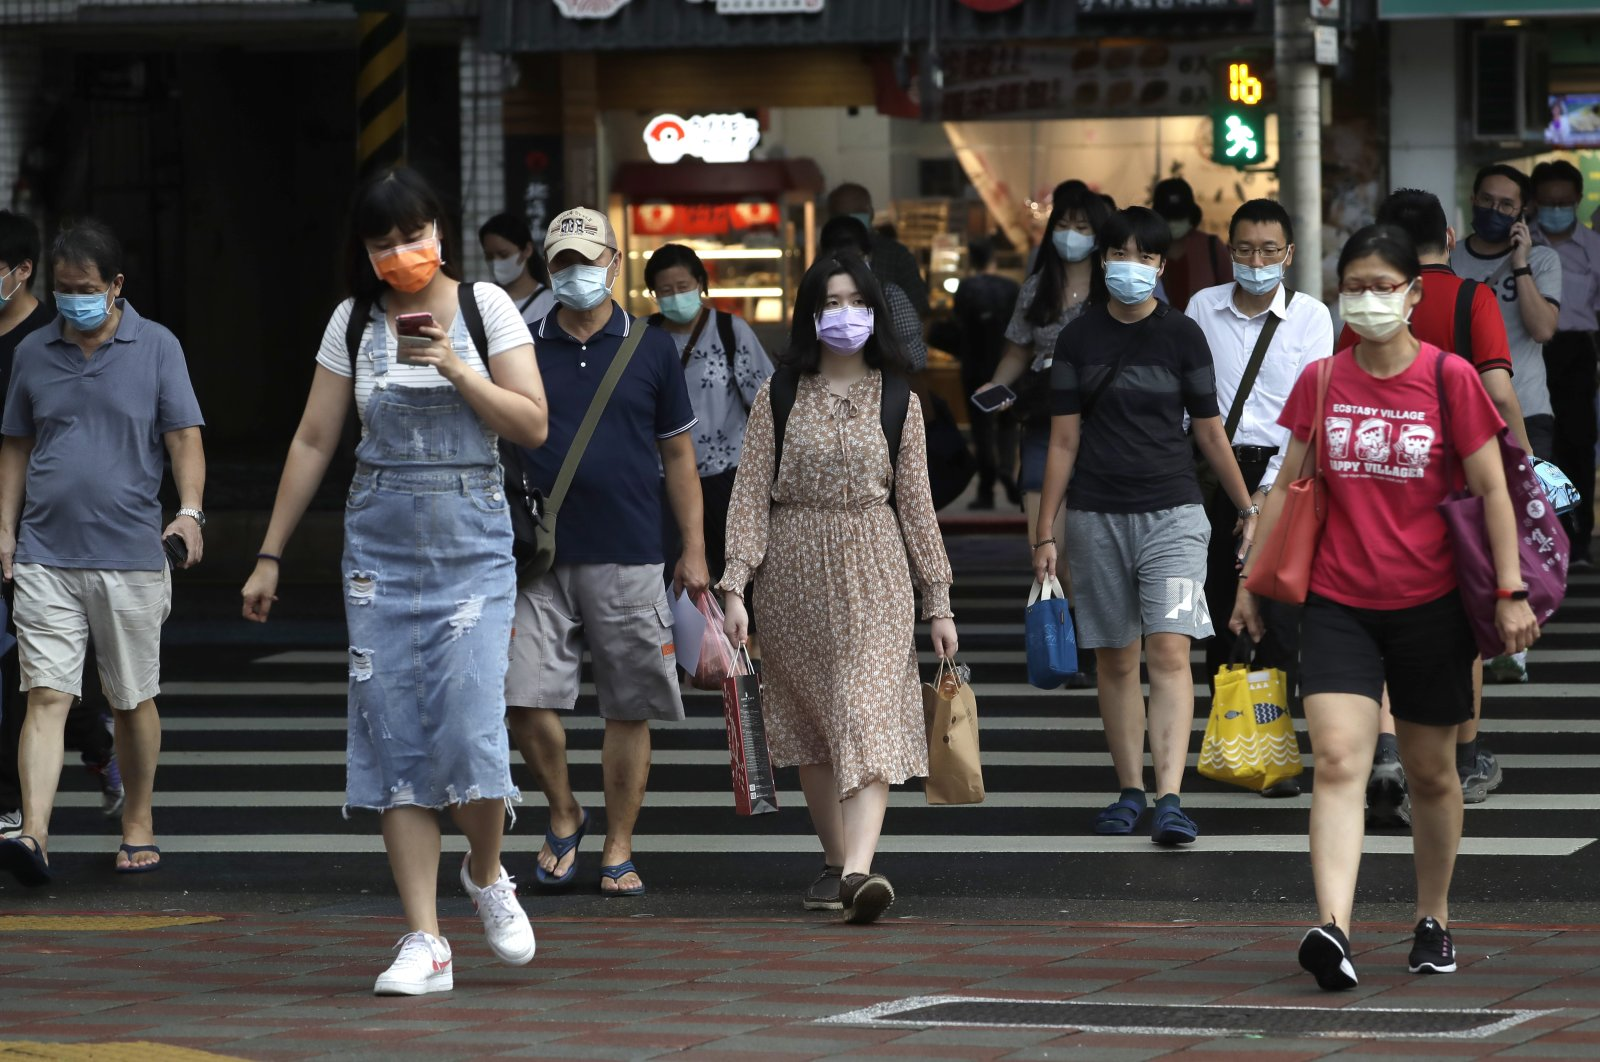 People wear face masks to help protect against the spread of the coronavirus in Taipei, Taiwan, Aug. 11, 2021. (AP Photo)